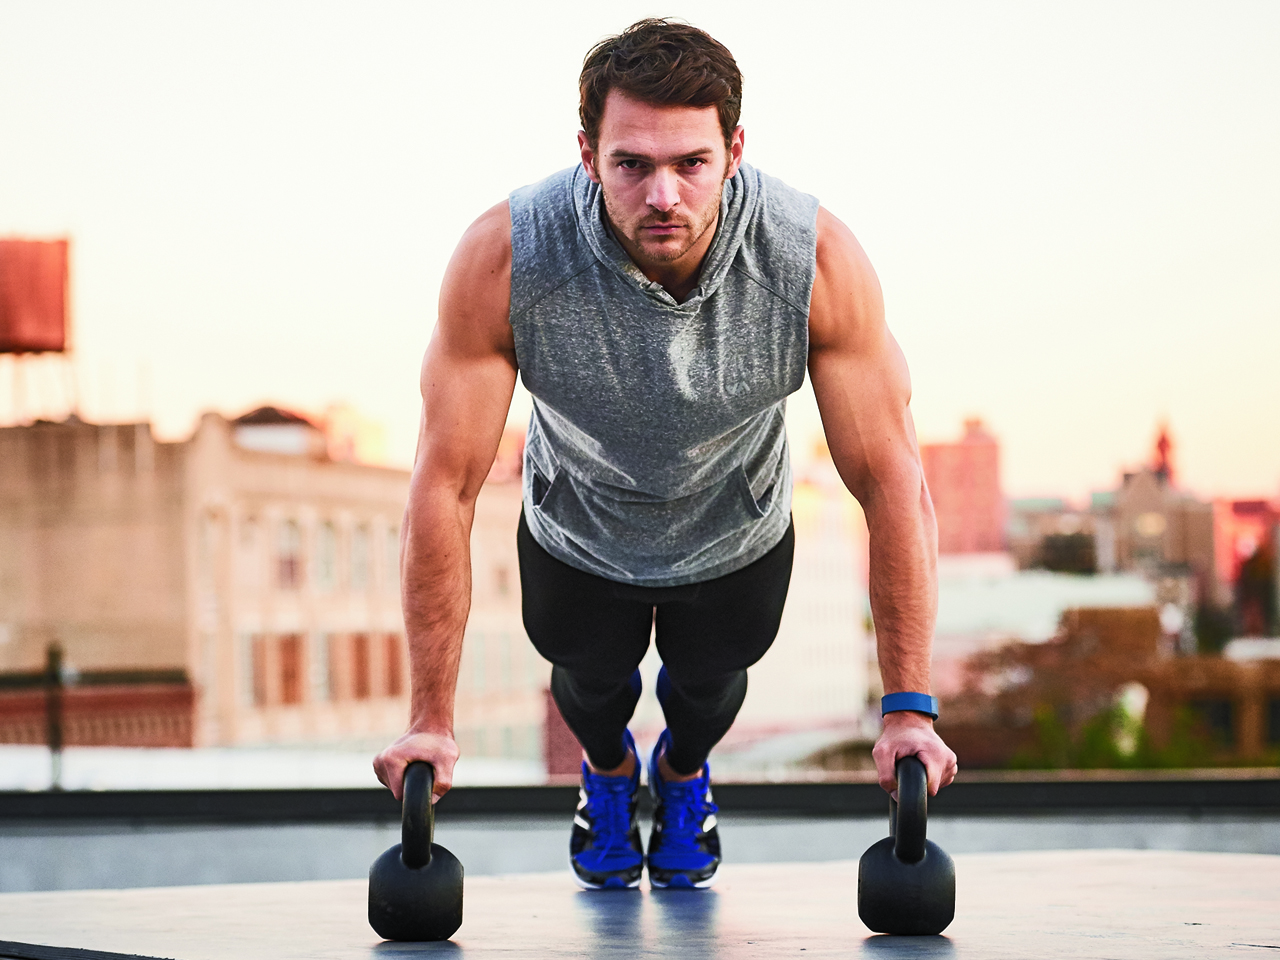 At home workouts to lose weight and build muscle